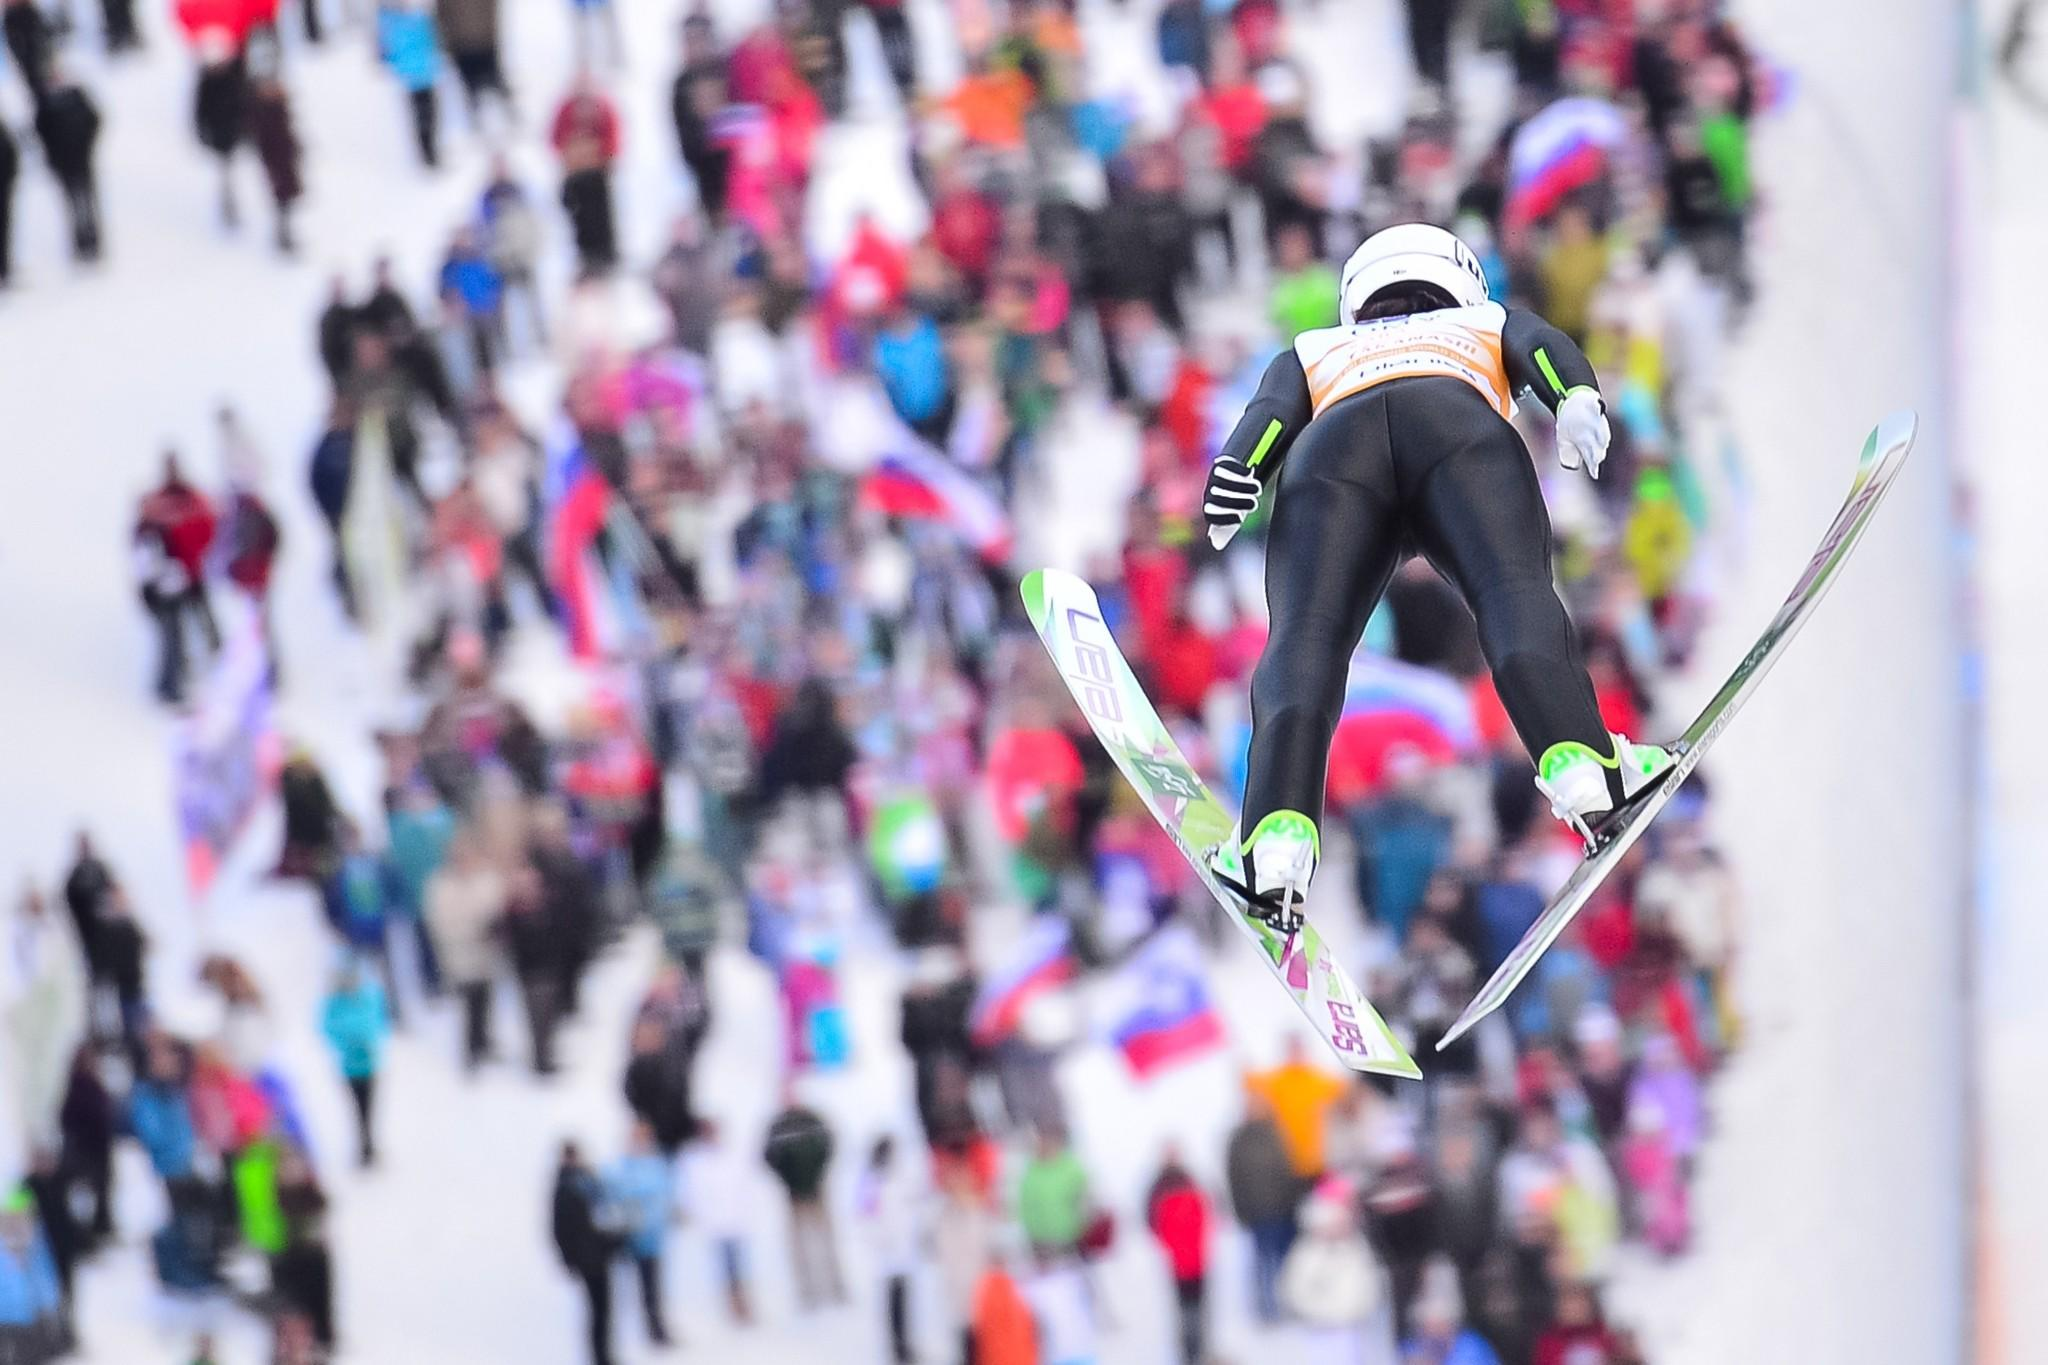 Japans' Sara Takanashi soars through the air during the Ladies FIS Ski Jumping World Cup in Planica, Slovenia.